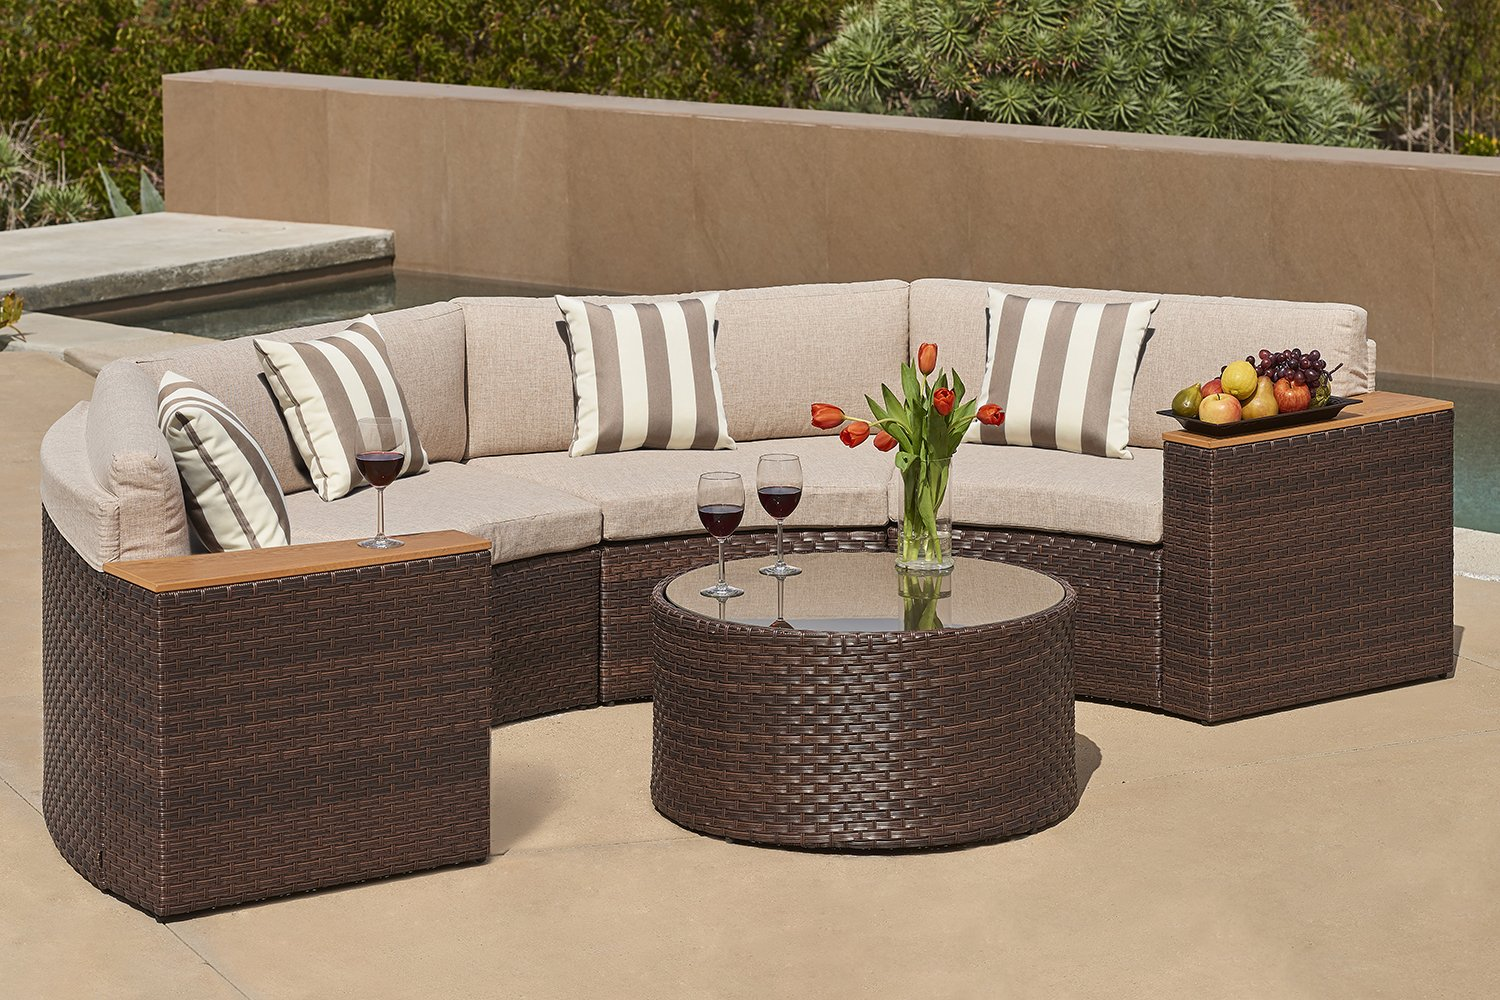 Solvista Outdoor 5-Piece Half-Moon Crescent Sectional Furniture Set All Weather Brown Wicker with Light Brown Waterproof Cushions & Sophisticated Glass Coffee Table | Patio, Backyard, Pool by Solaura